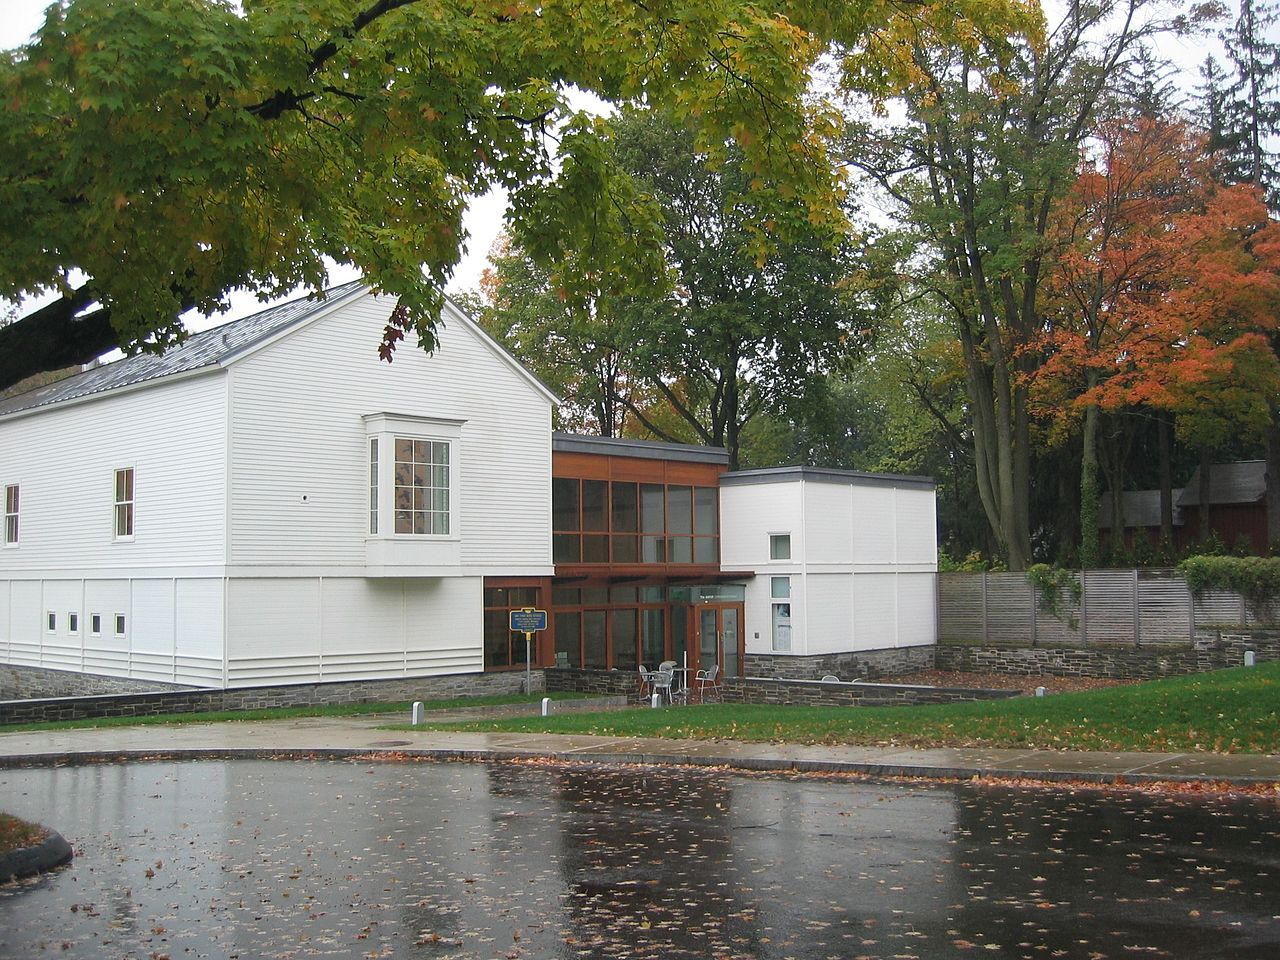 Best Visiting Place In Connecticut-The Aldrich Contemporary Art Museum